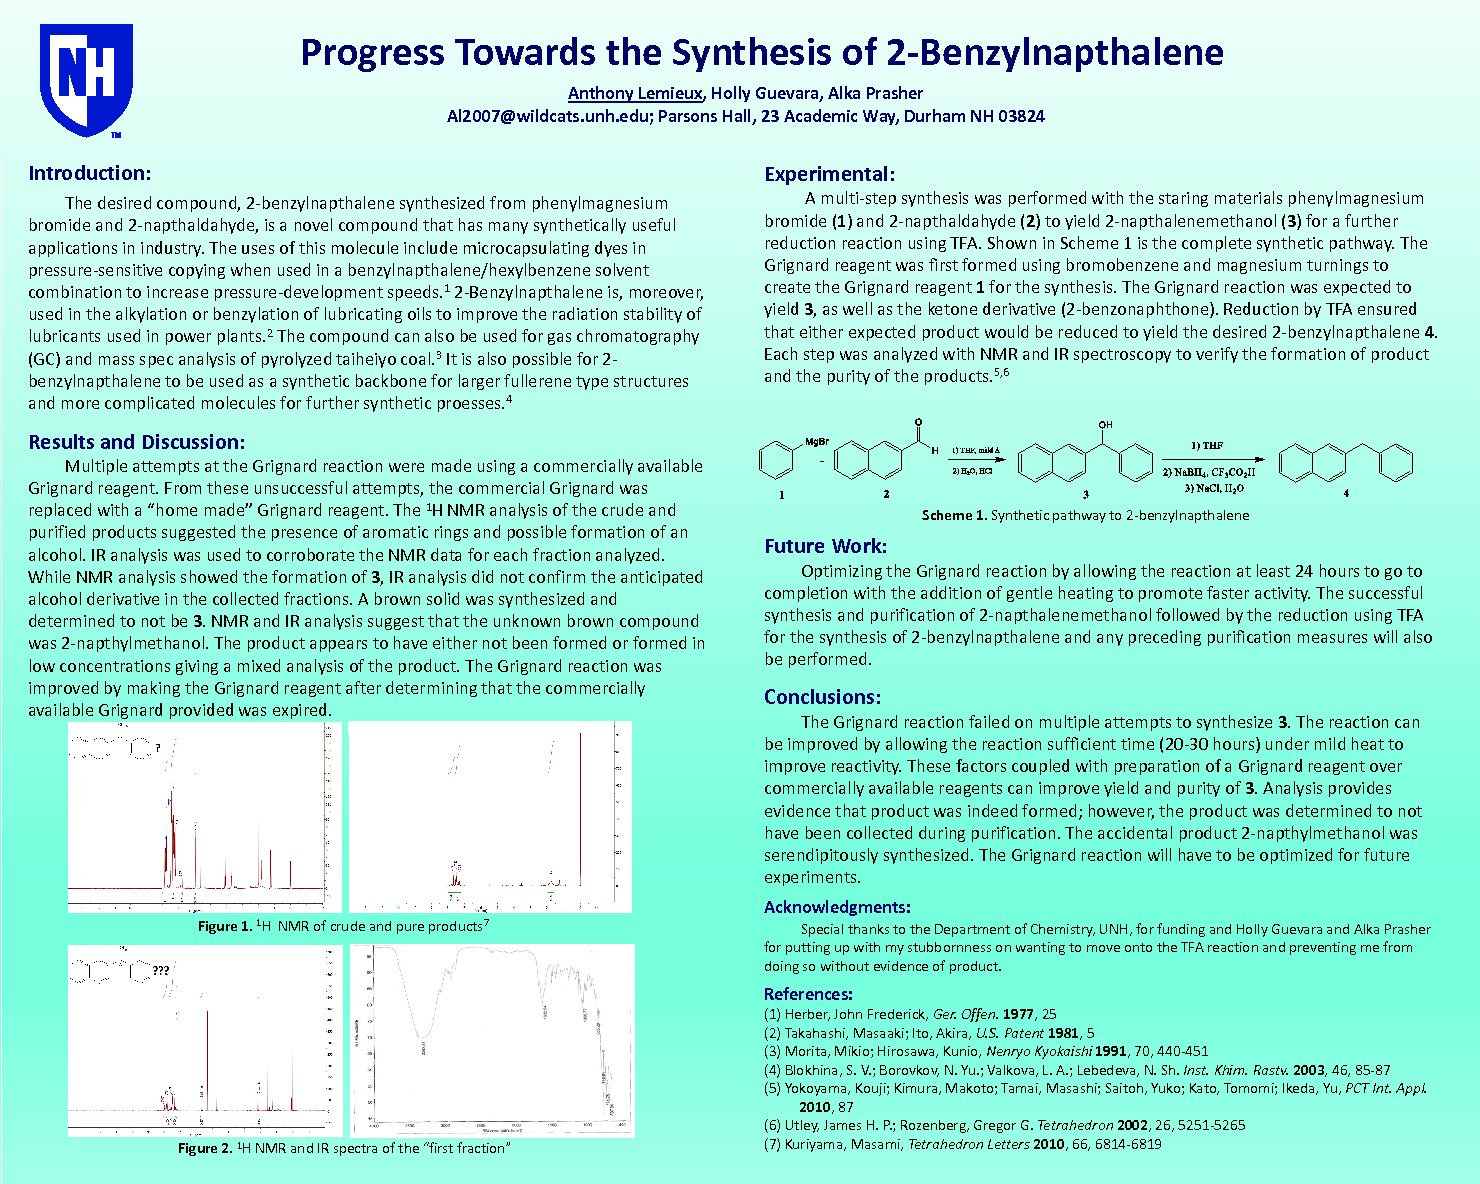 Progress Towards The Synthesis Of 2-Benzylnapthalene by Al2007